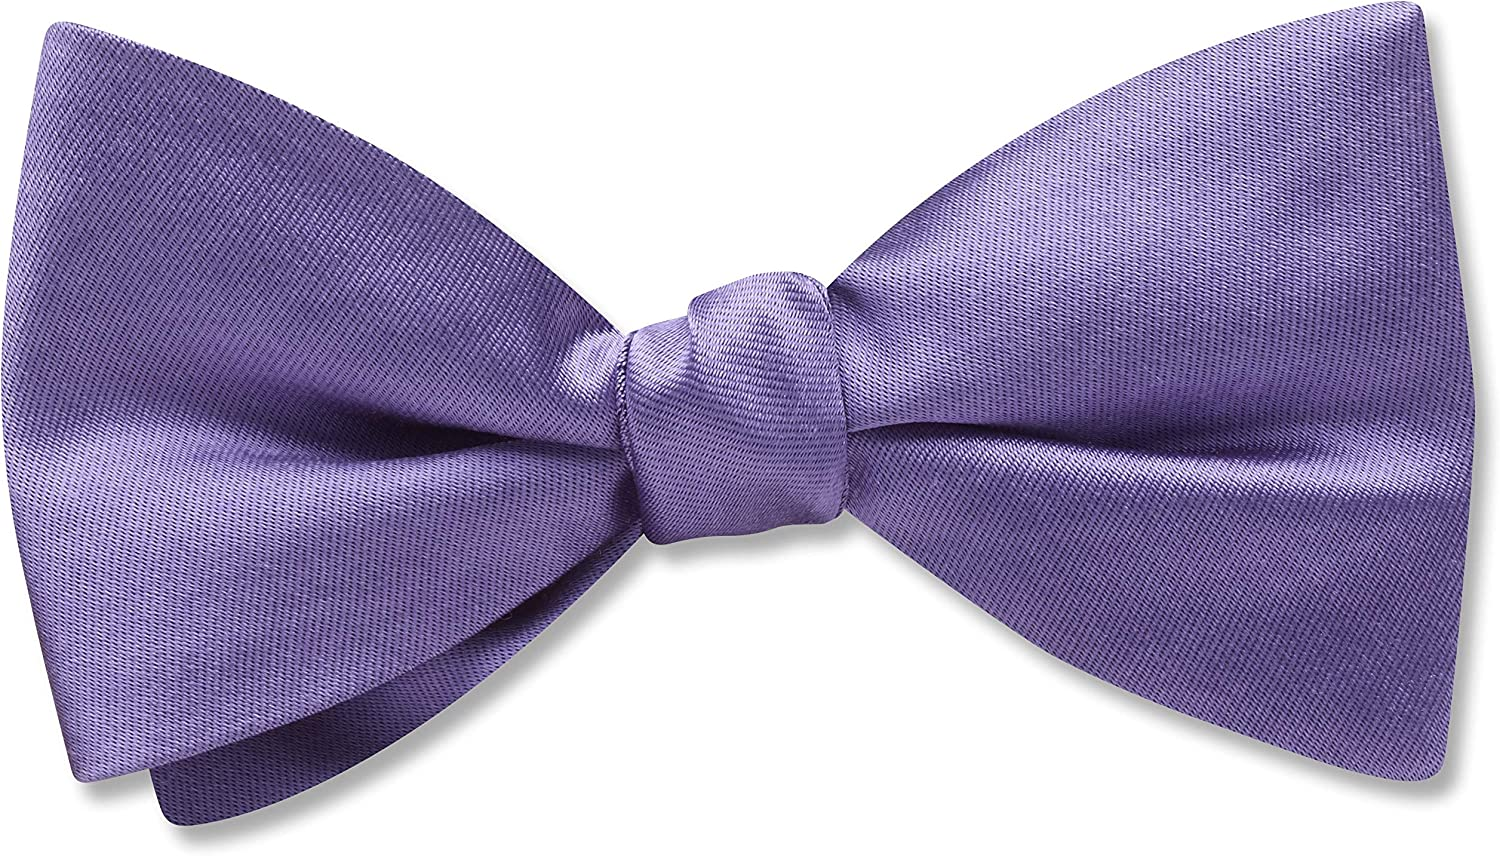 Somerville Lapis Purple,Blue Solid, Men's Bow Tie, Handmade in the USA